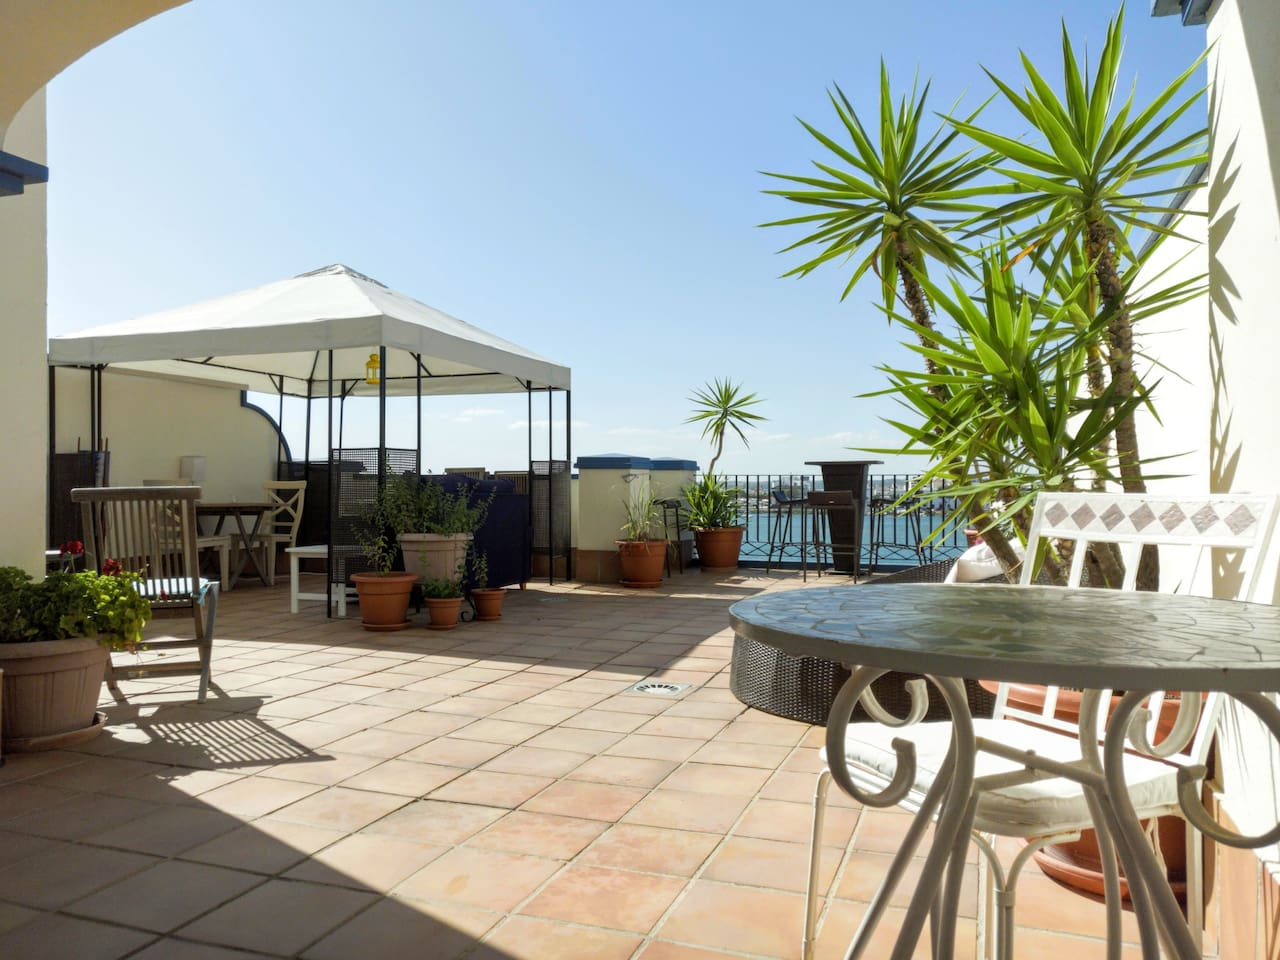 The terrace (145 m2) 2018 with several places to sit, lounche, enjoy the view or the sunset or having diner.